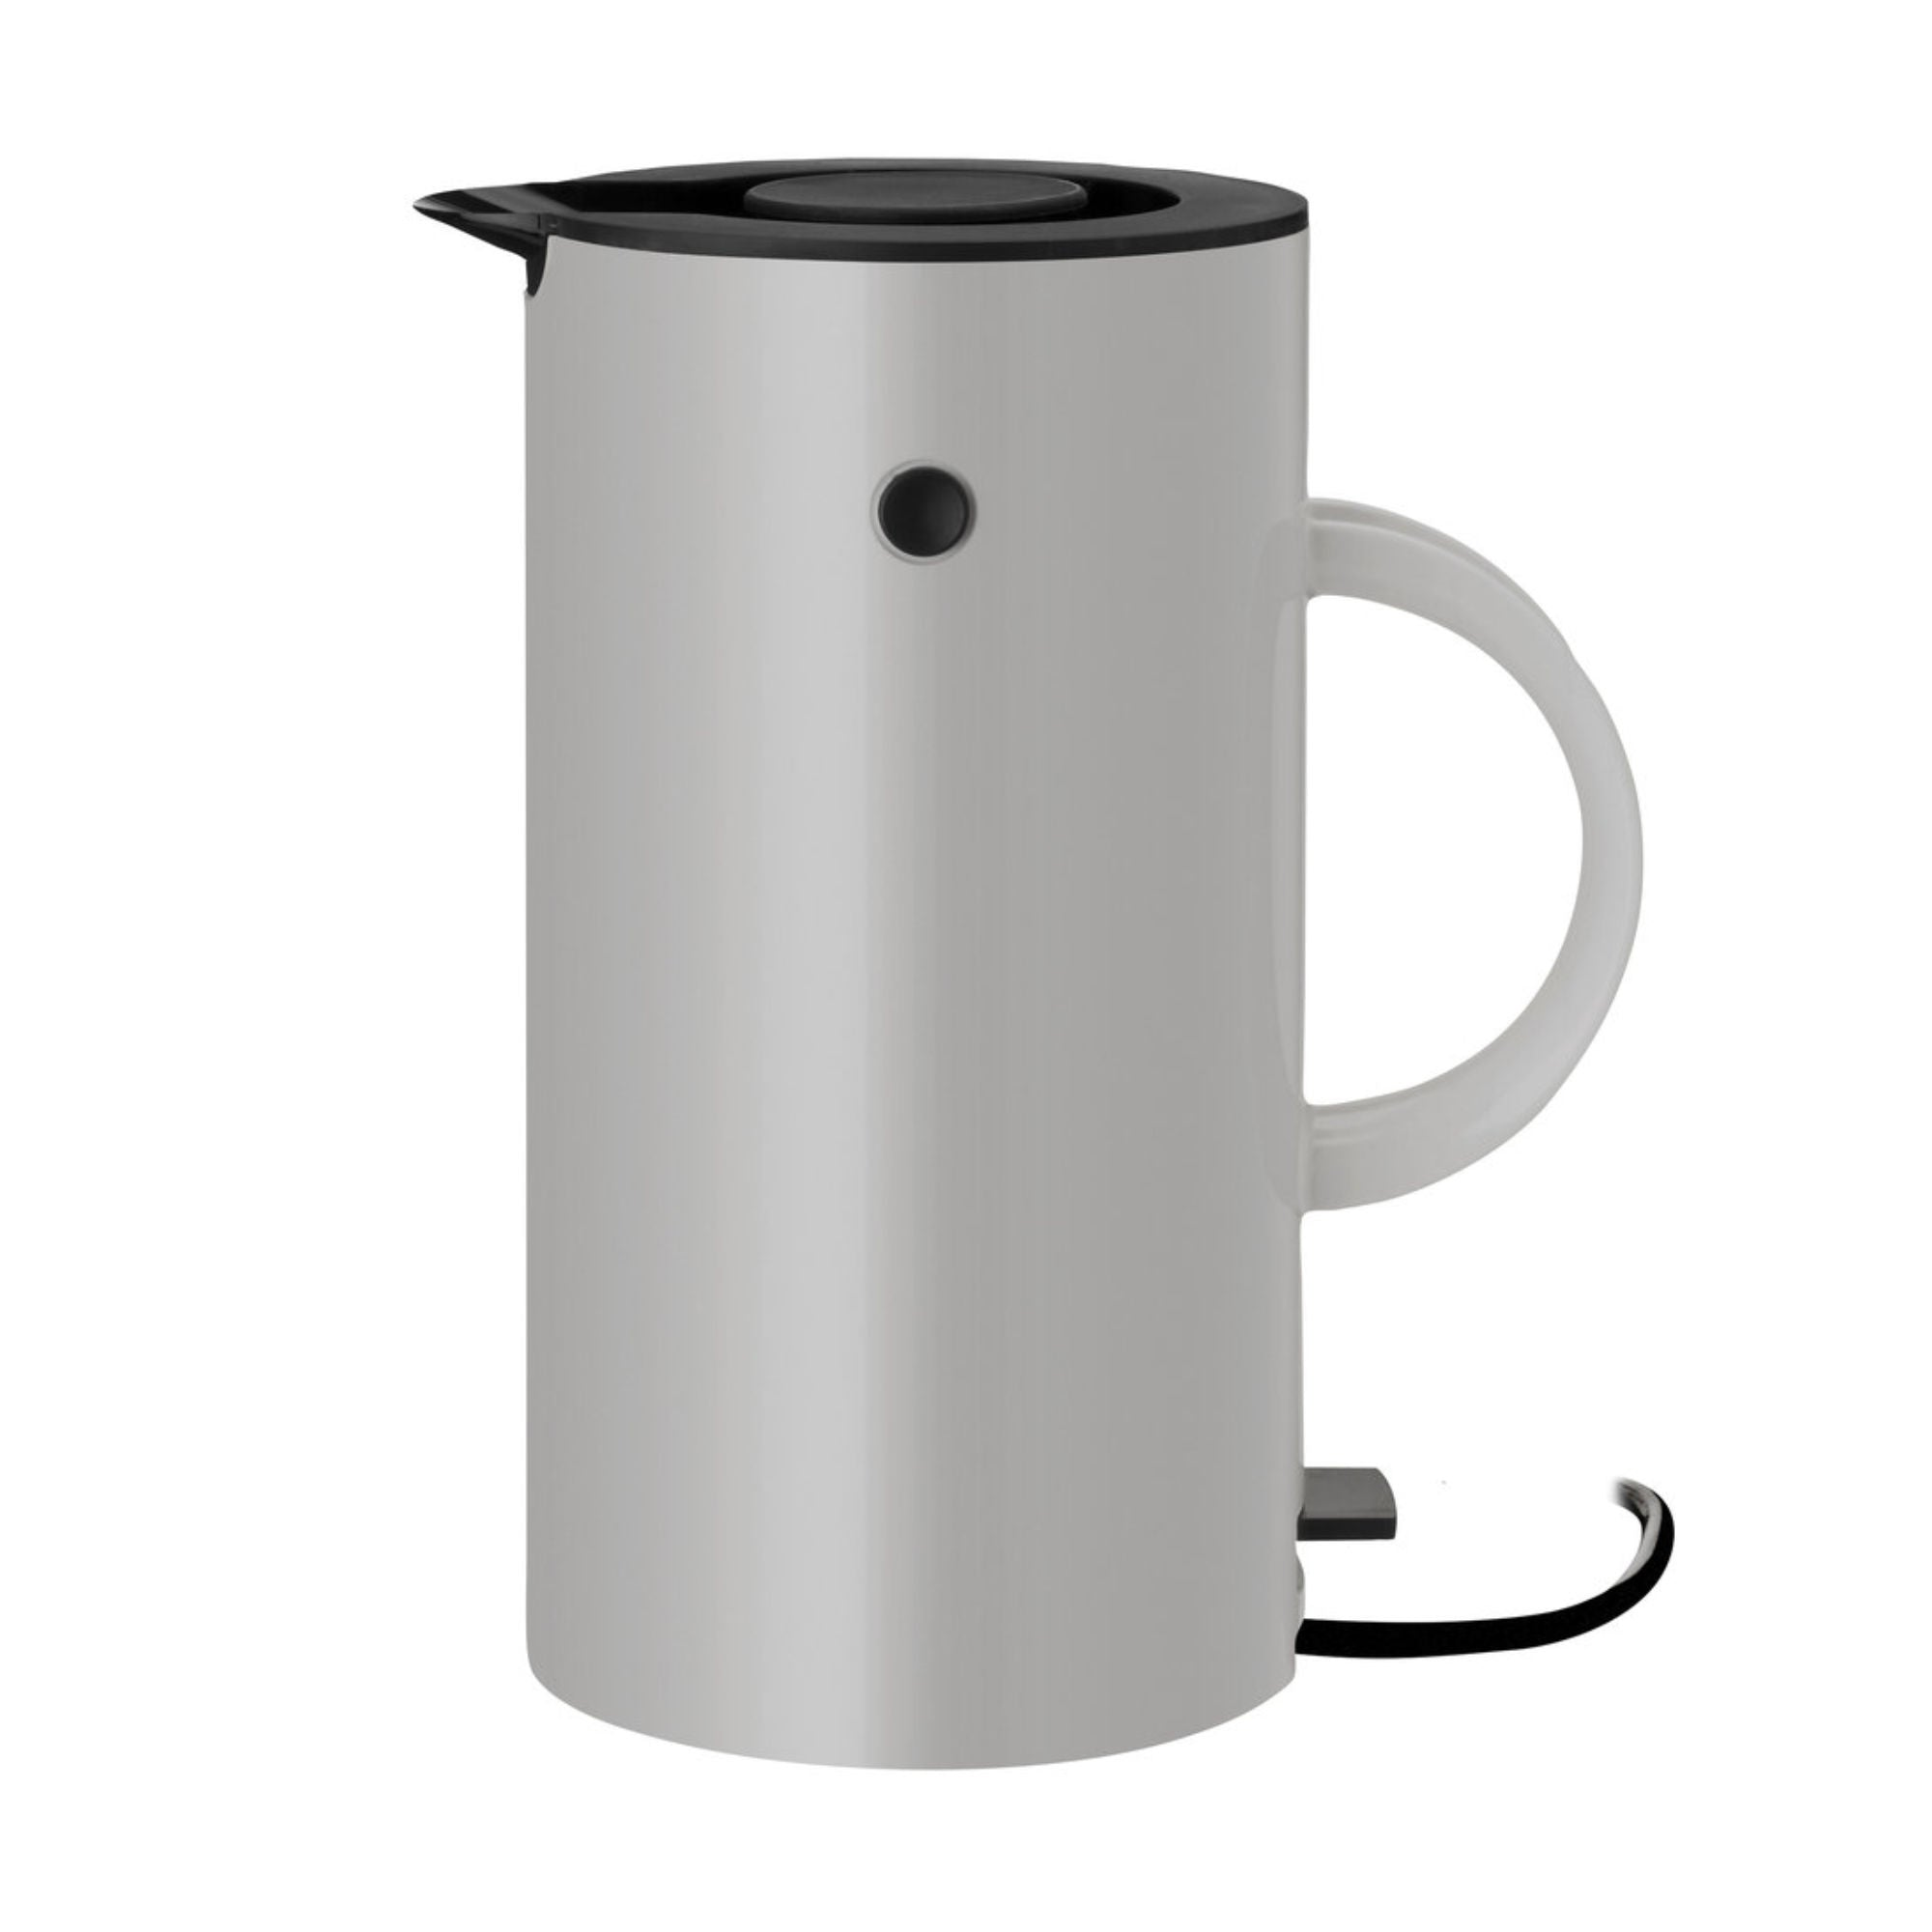 Stelton EM77 Electric Kettle 1.5L , Light Grey